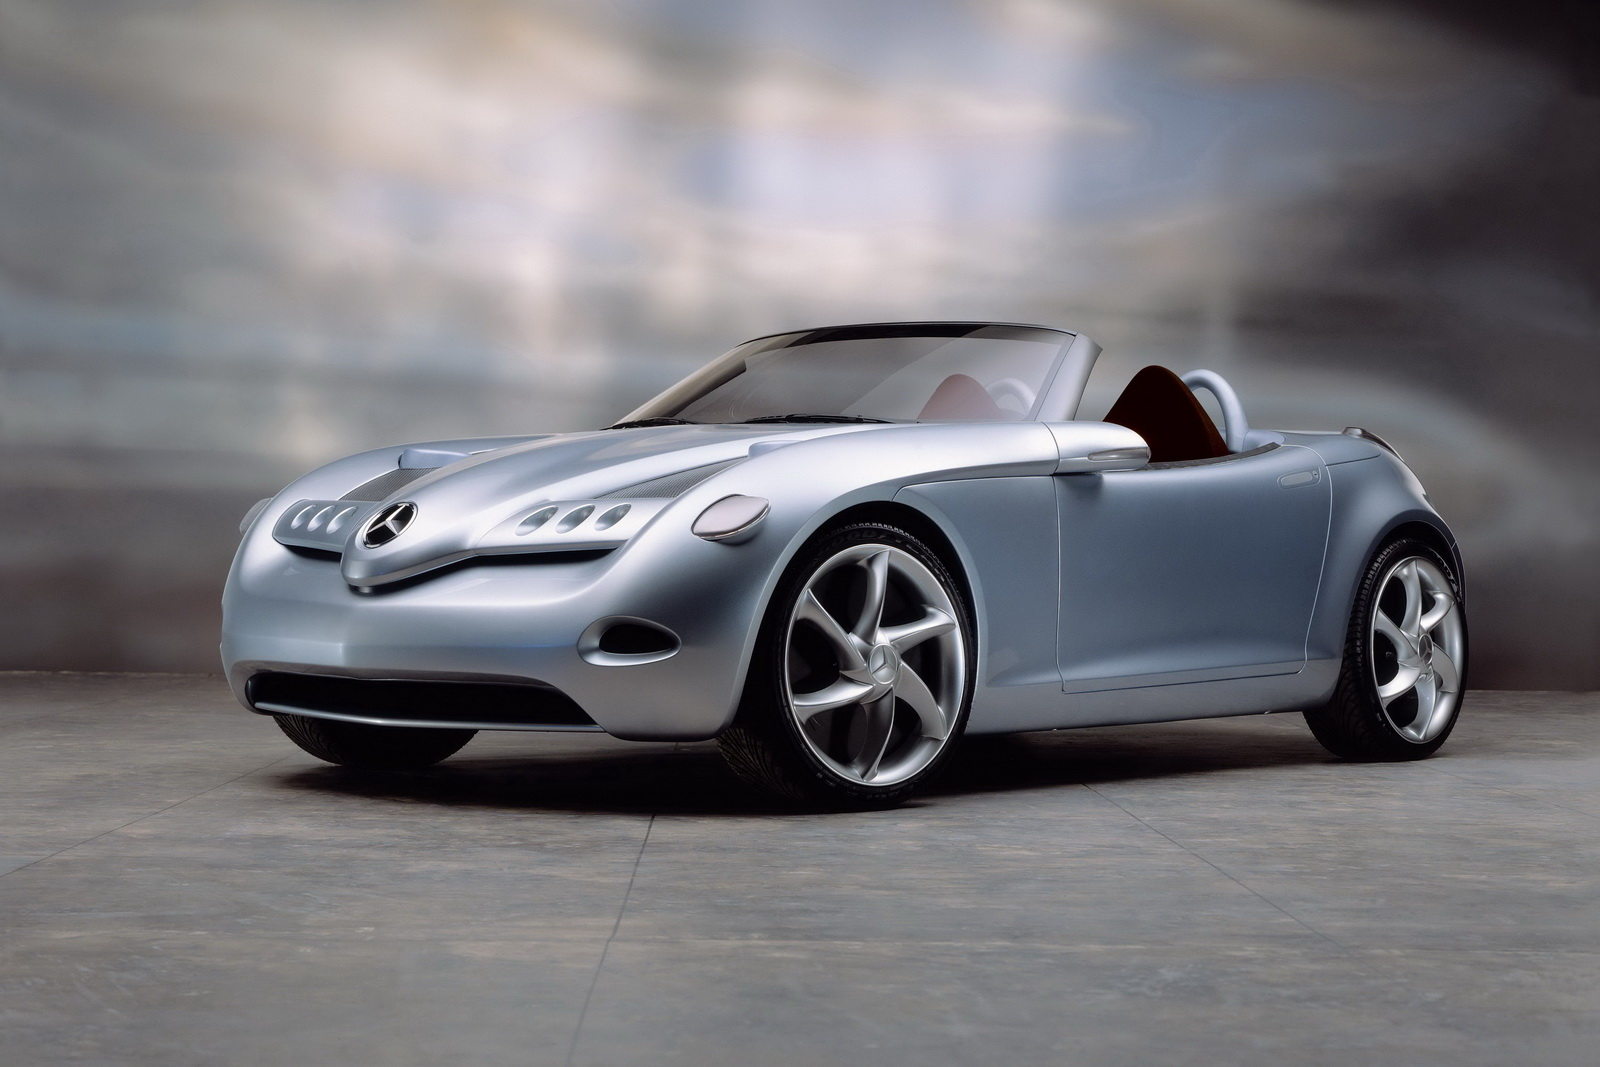 2013 MERCEDES BENZ SLA ROADSTER Mercedes teaser information about Launching FWD SLA Small Roadster in 2013